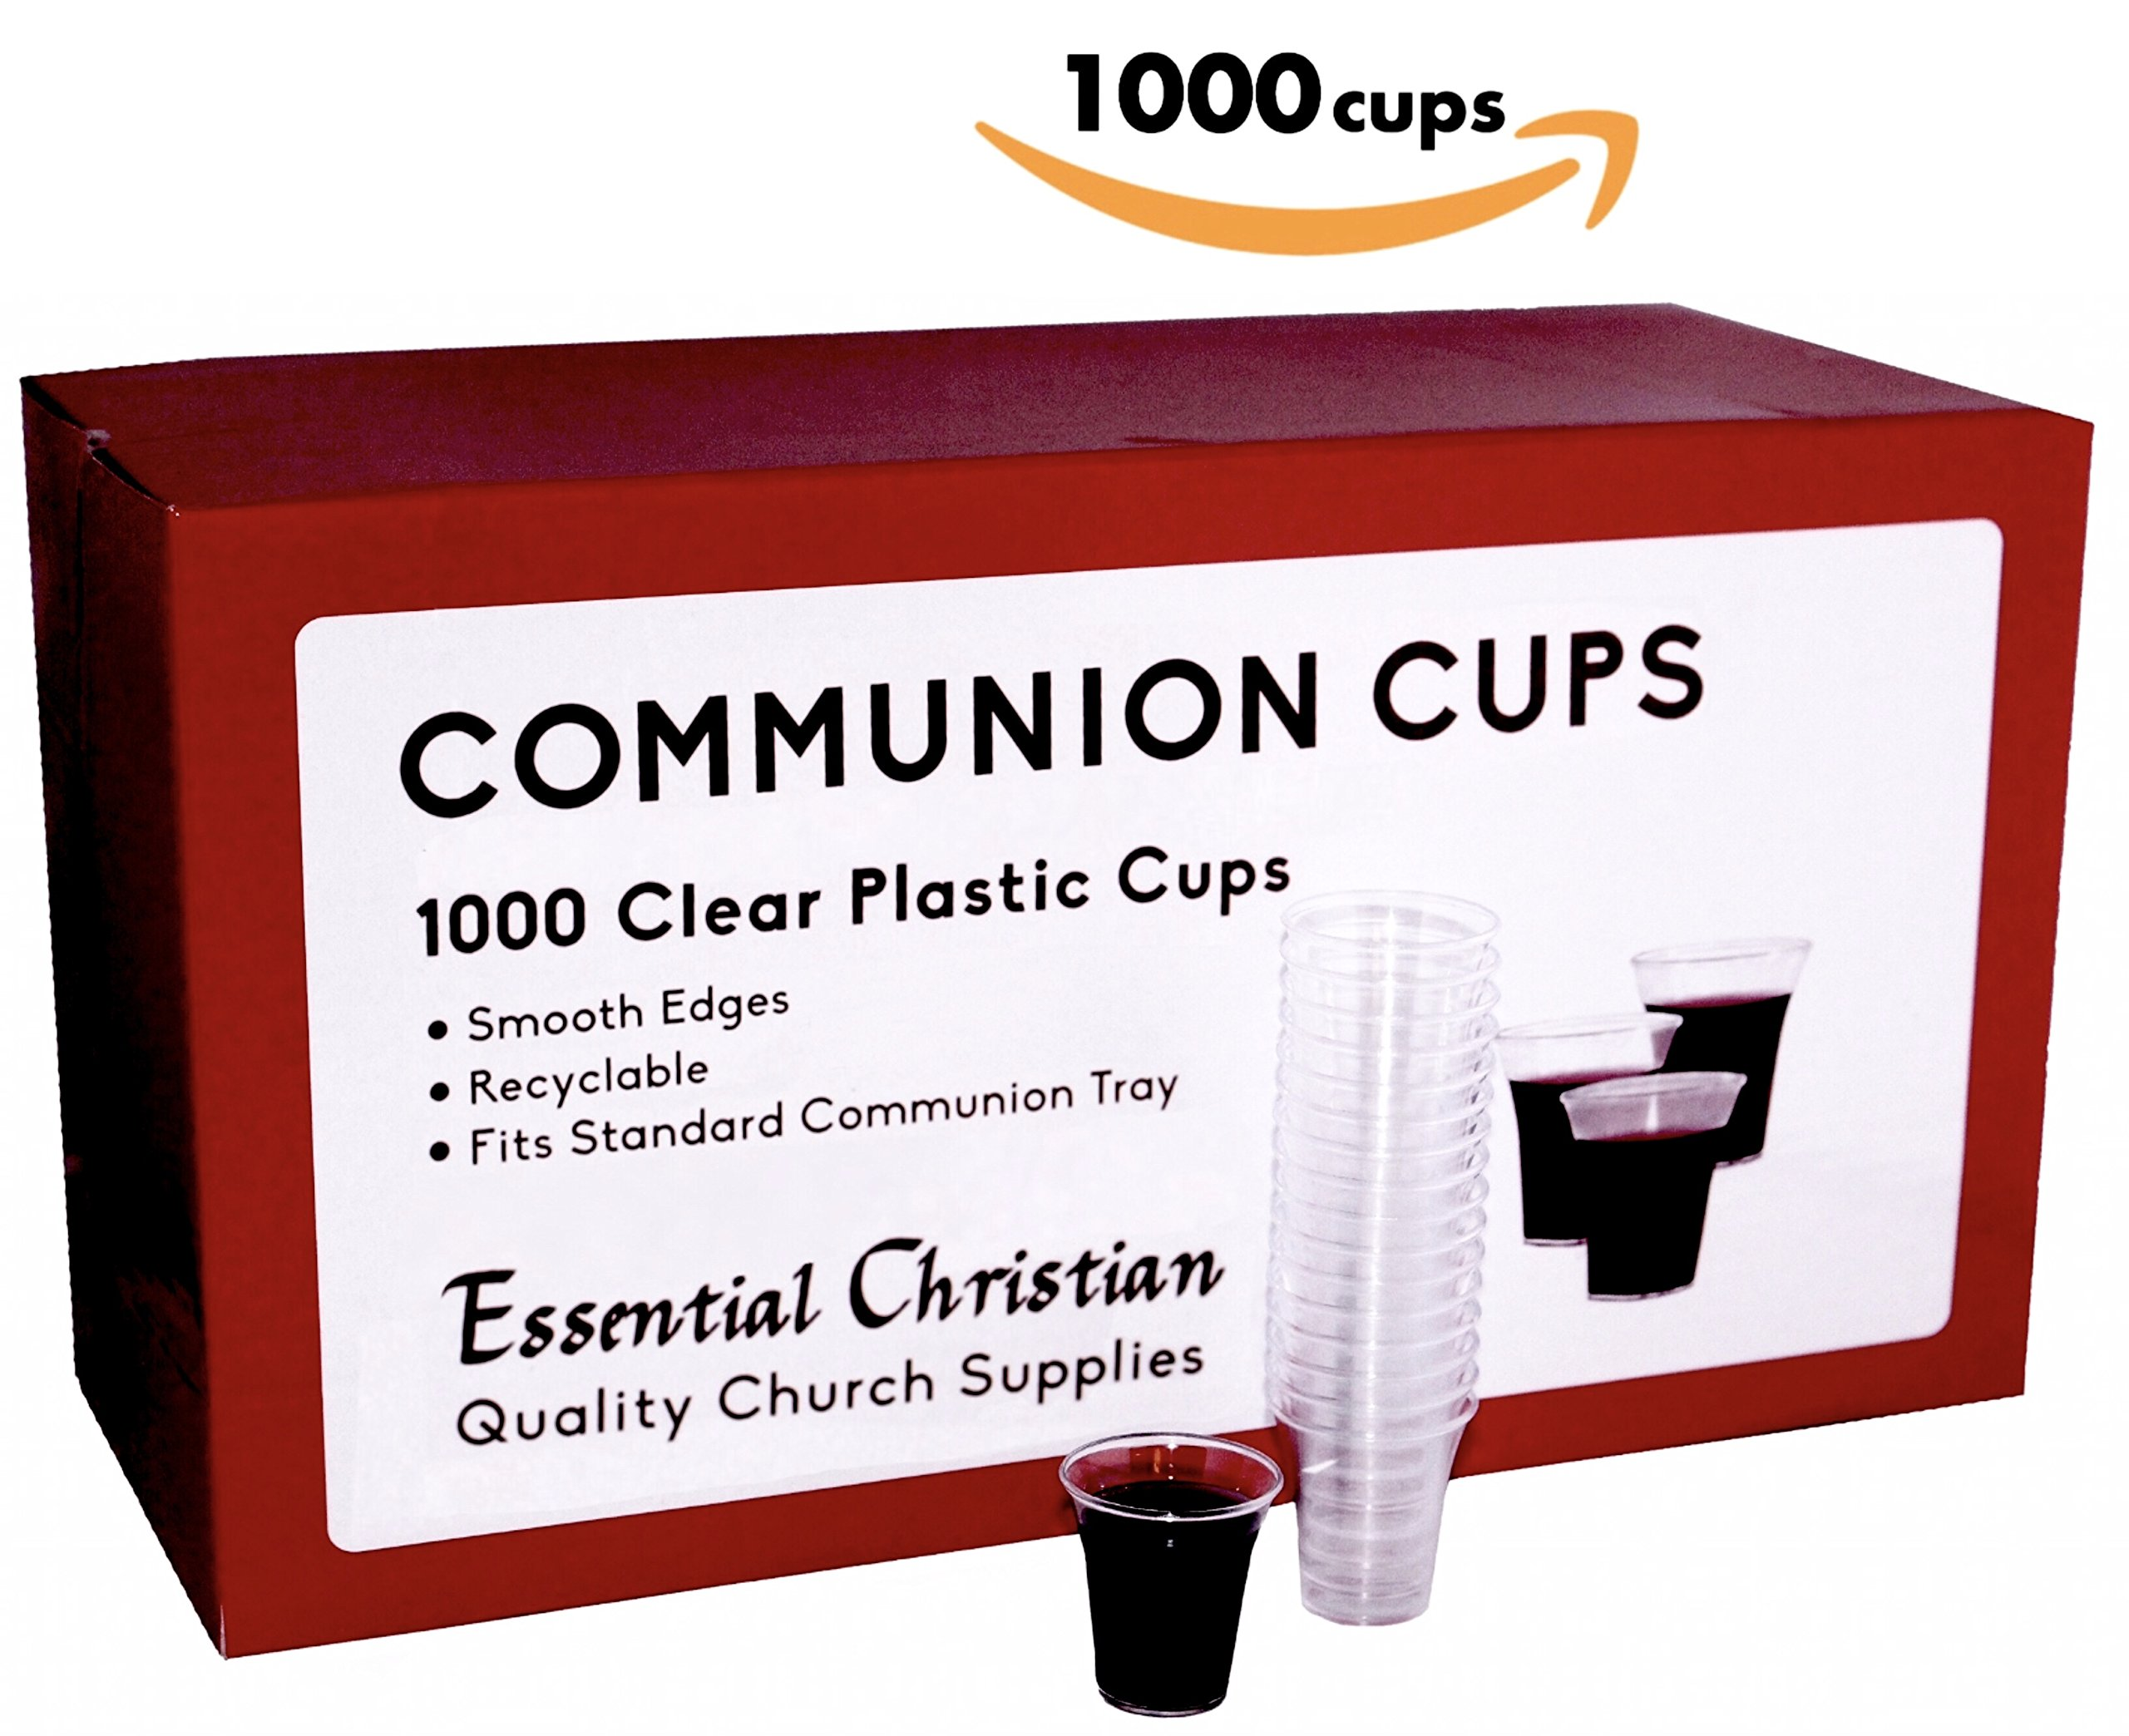 Communion Cups Recyclable Plastic - Box of 1000 - Fits All Standard Communion Trays - Surpasses FDA Quality Standard